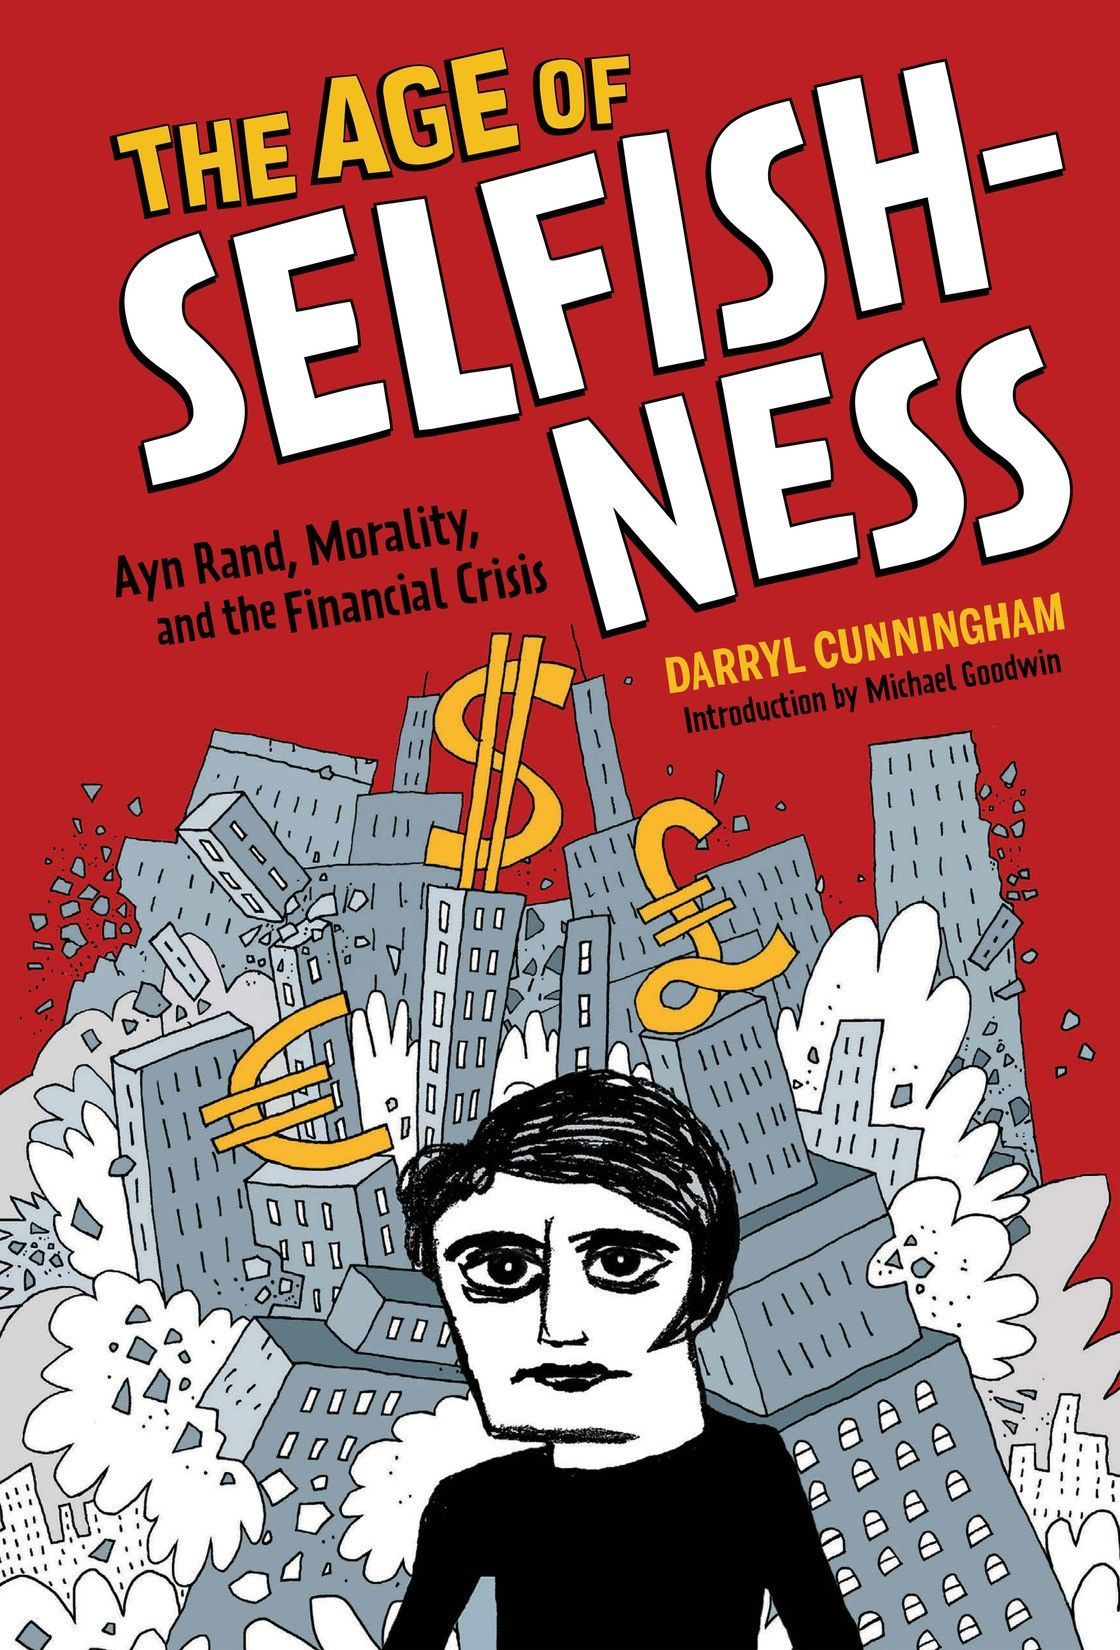 The age of selfishness ayn rand morality and the financial crisis the age of selfishness ayn rand morality and the financial crisis fandeluxe